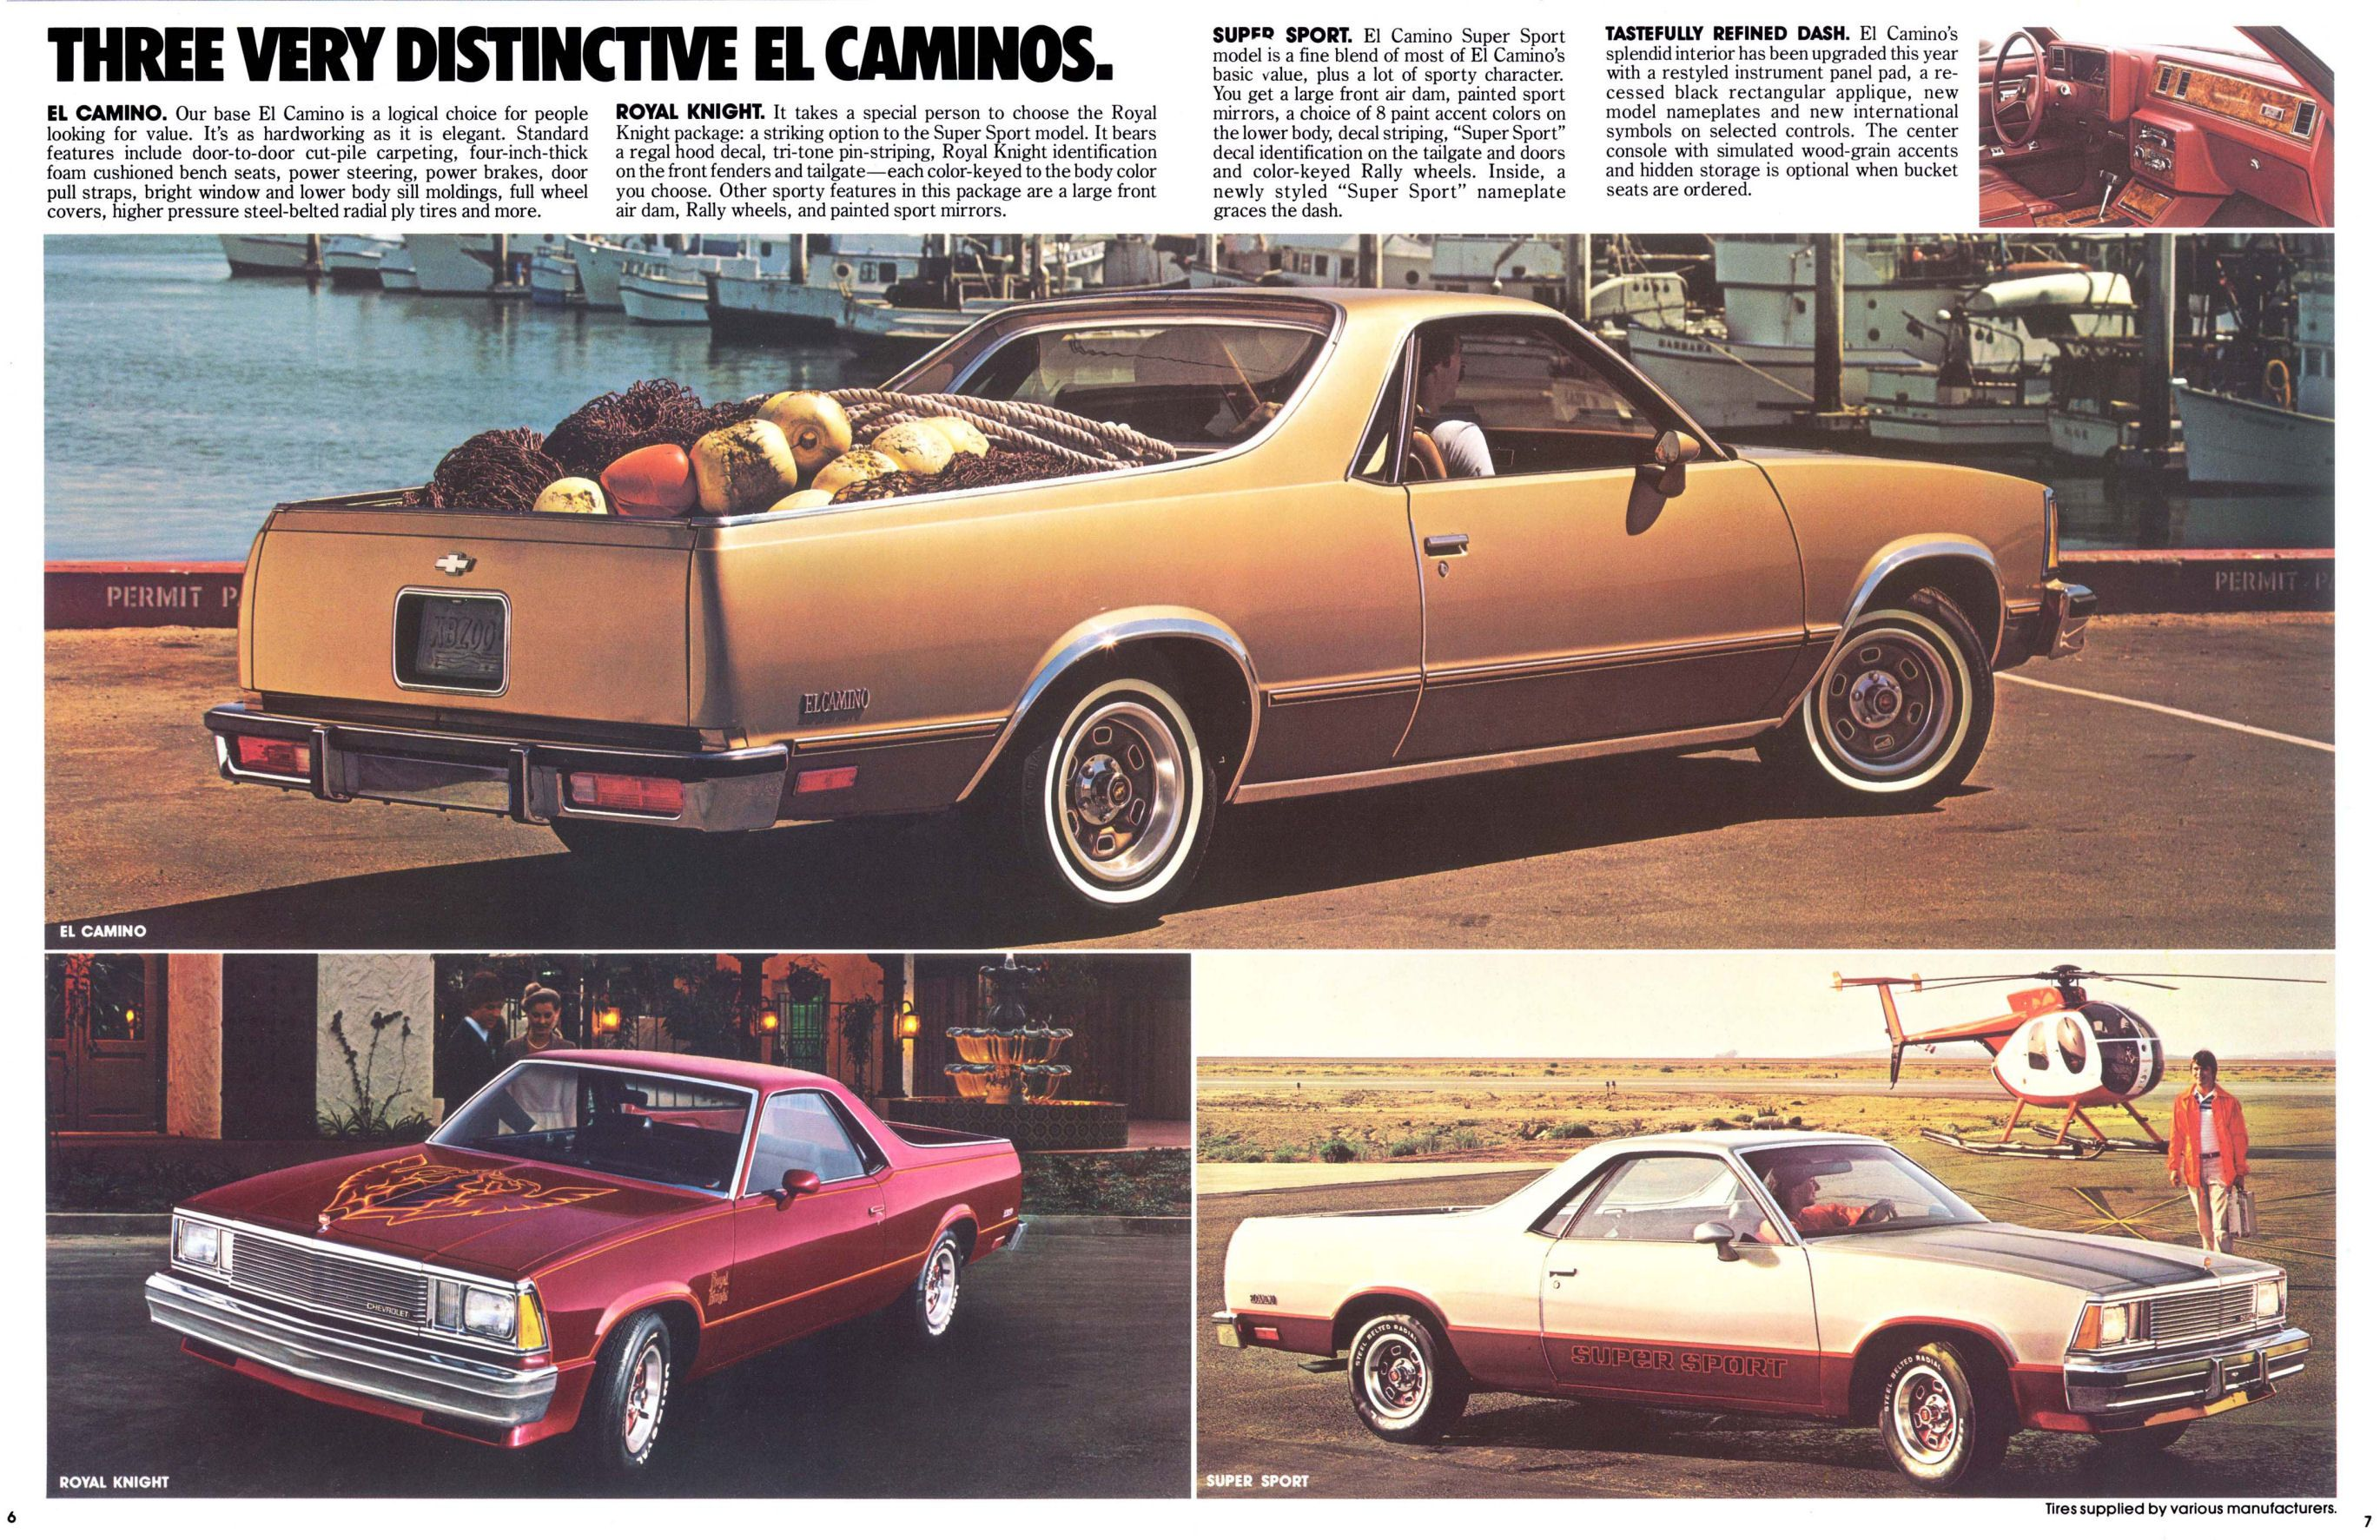 Photos Of Chevrolet El Camino Photo Galleries On Flipacars Chevrolet El Camino Chevrolet Classic Cars Trucks